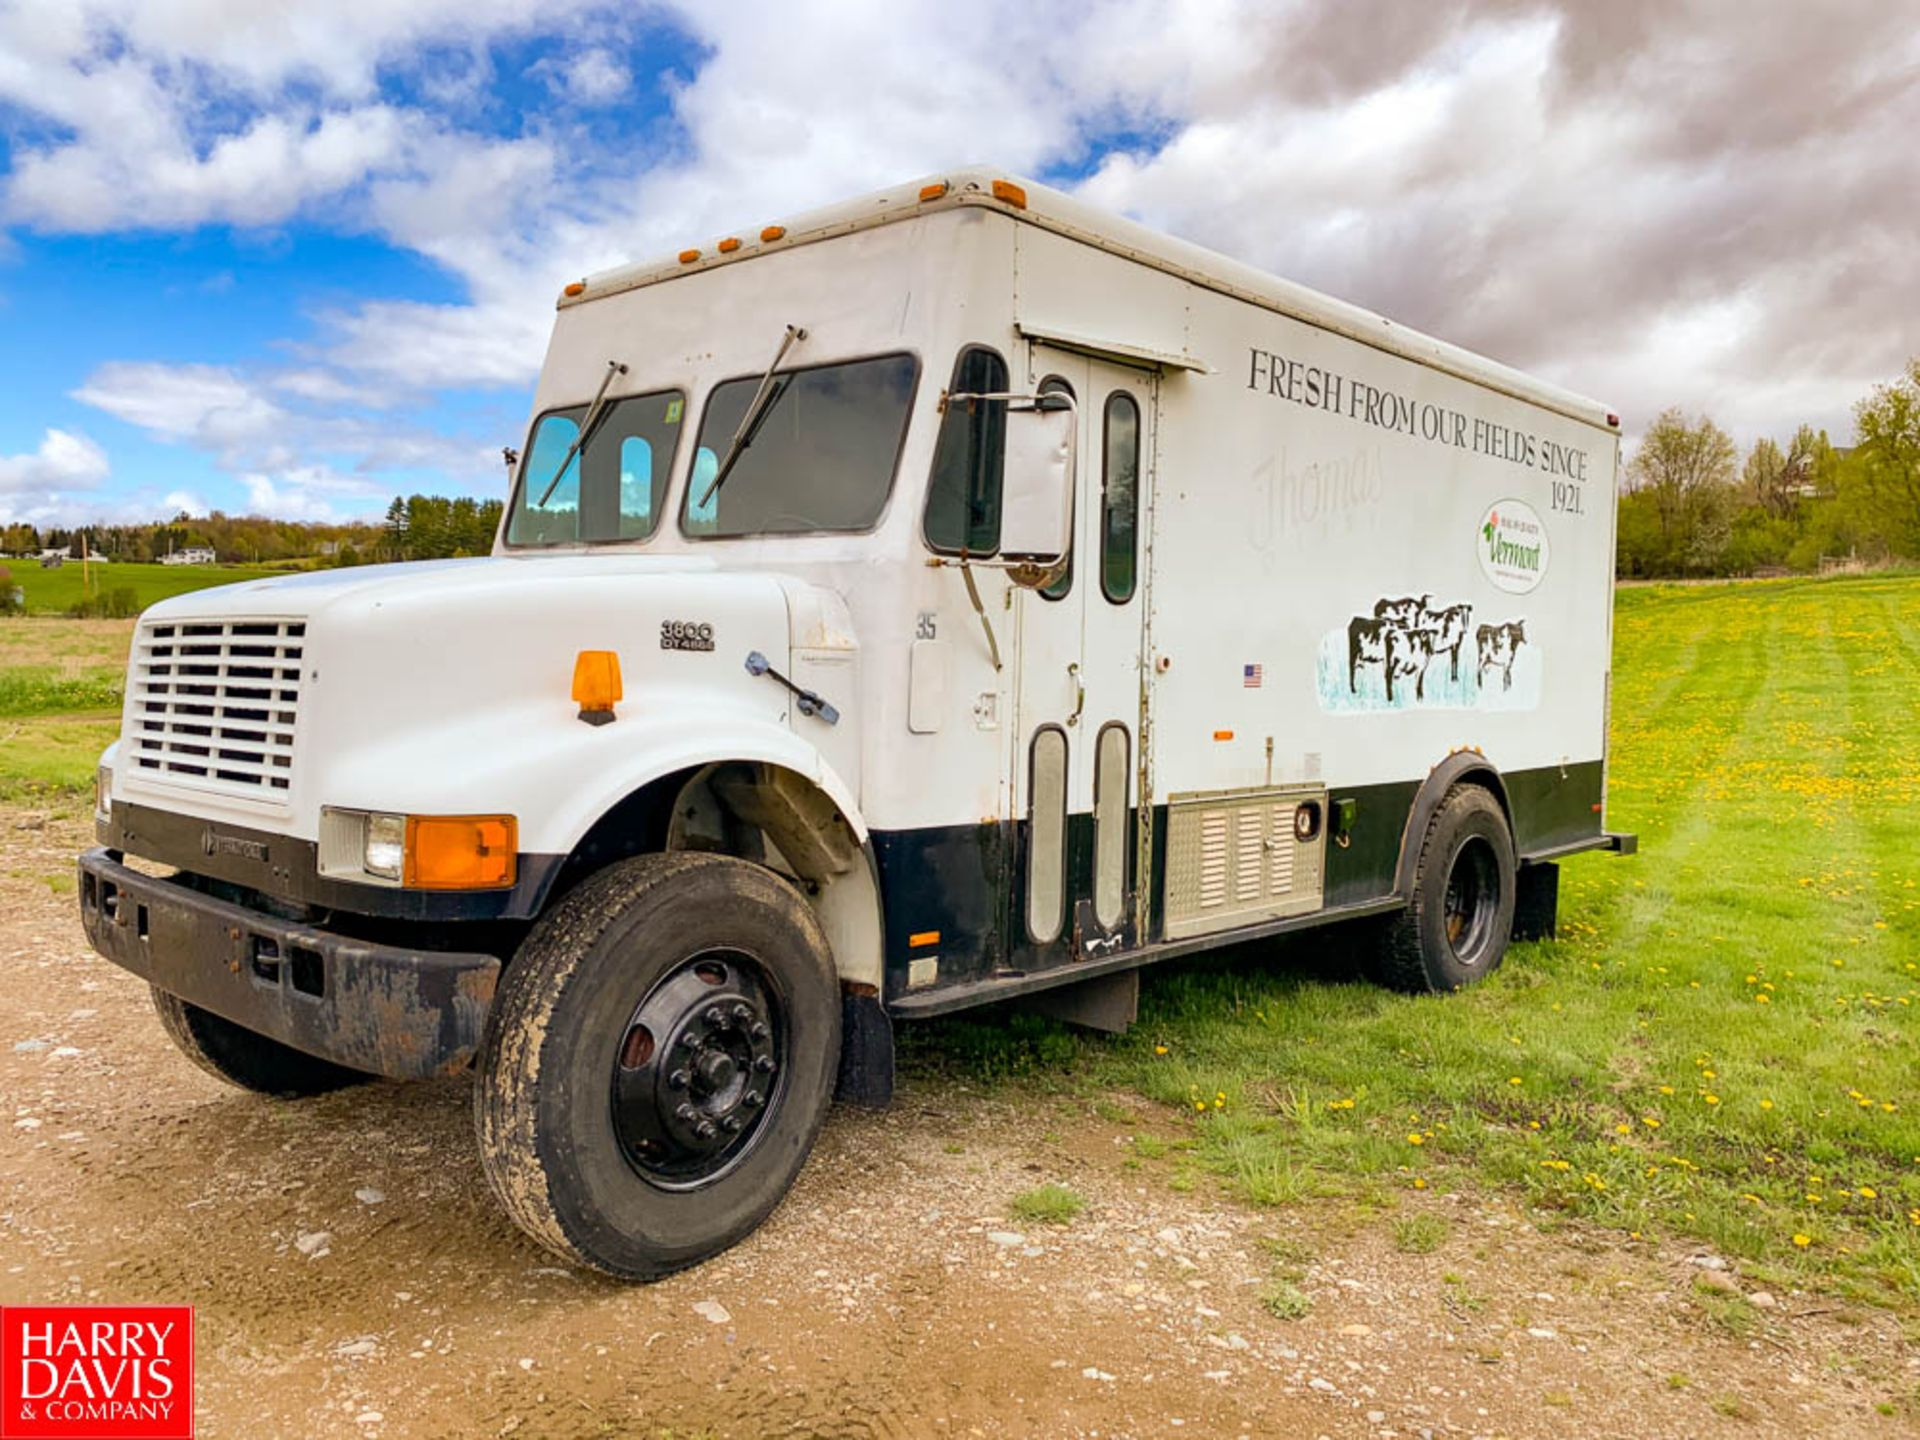 2000 International 12' Refrigerated Retail Delivery Truck Model: 3800, 28,000 GVWR, DT466E Diesel,